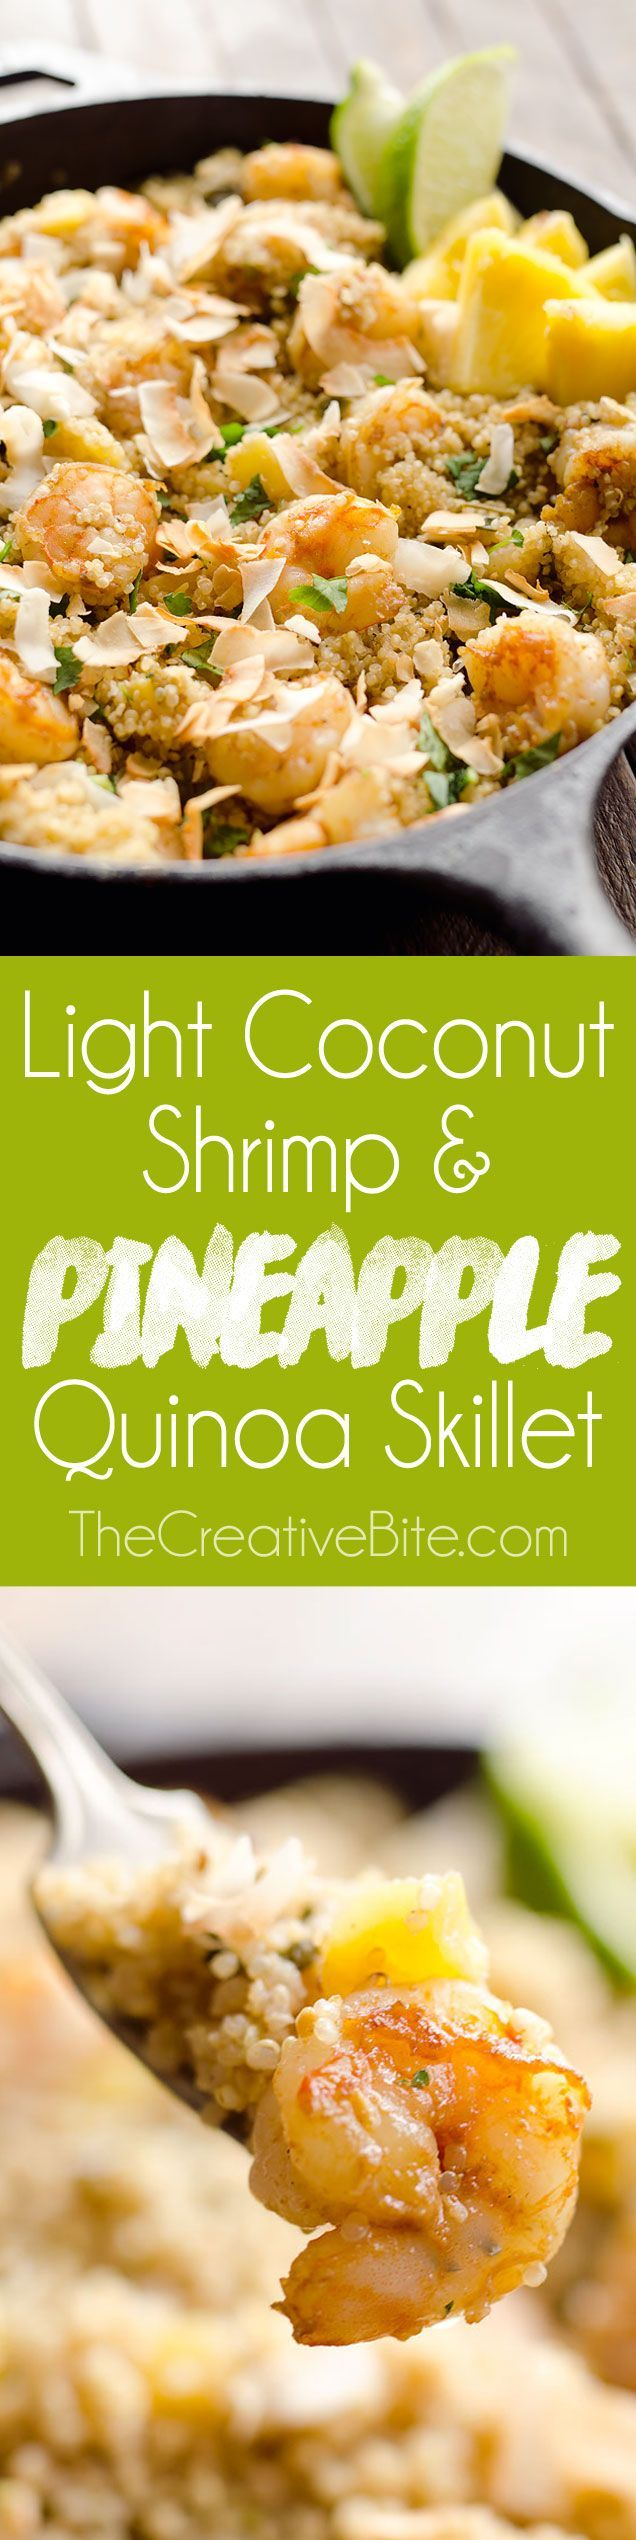 Light Coconut Shrimp & Pineapple Quinoa Skillet is an easy one pot dinner idea loaded with healthy tropical flavors. Quinoa, shrimp, pineapple and unsweetened coconut make up this flavorful and delicious dish for a healthy meal everyone will love. #Quinoa #OnePot #Skillet